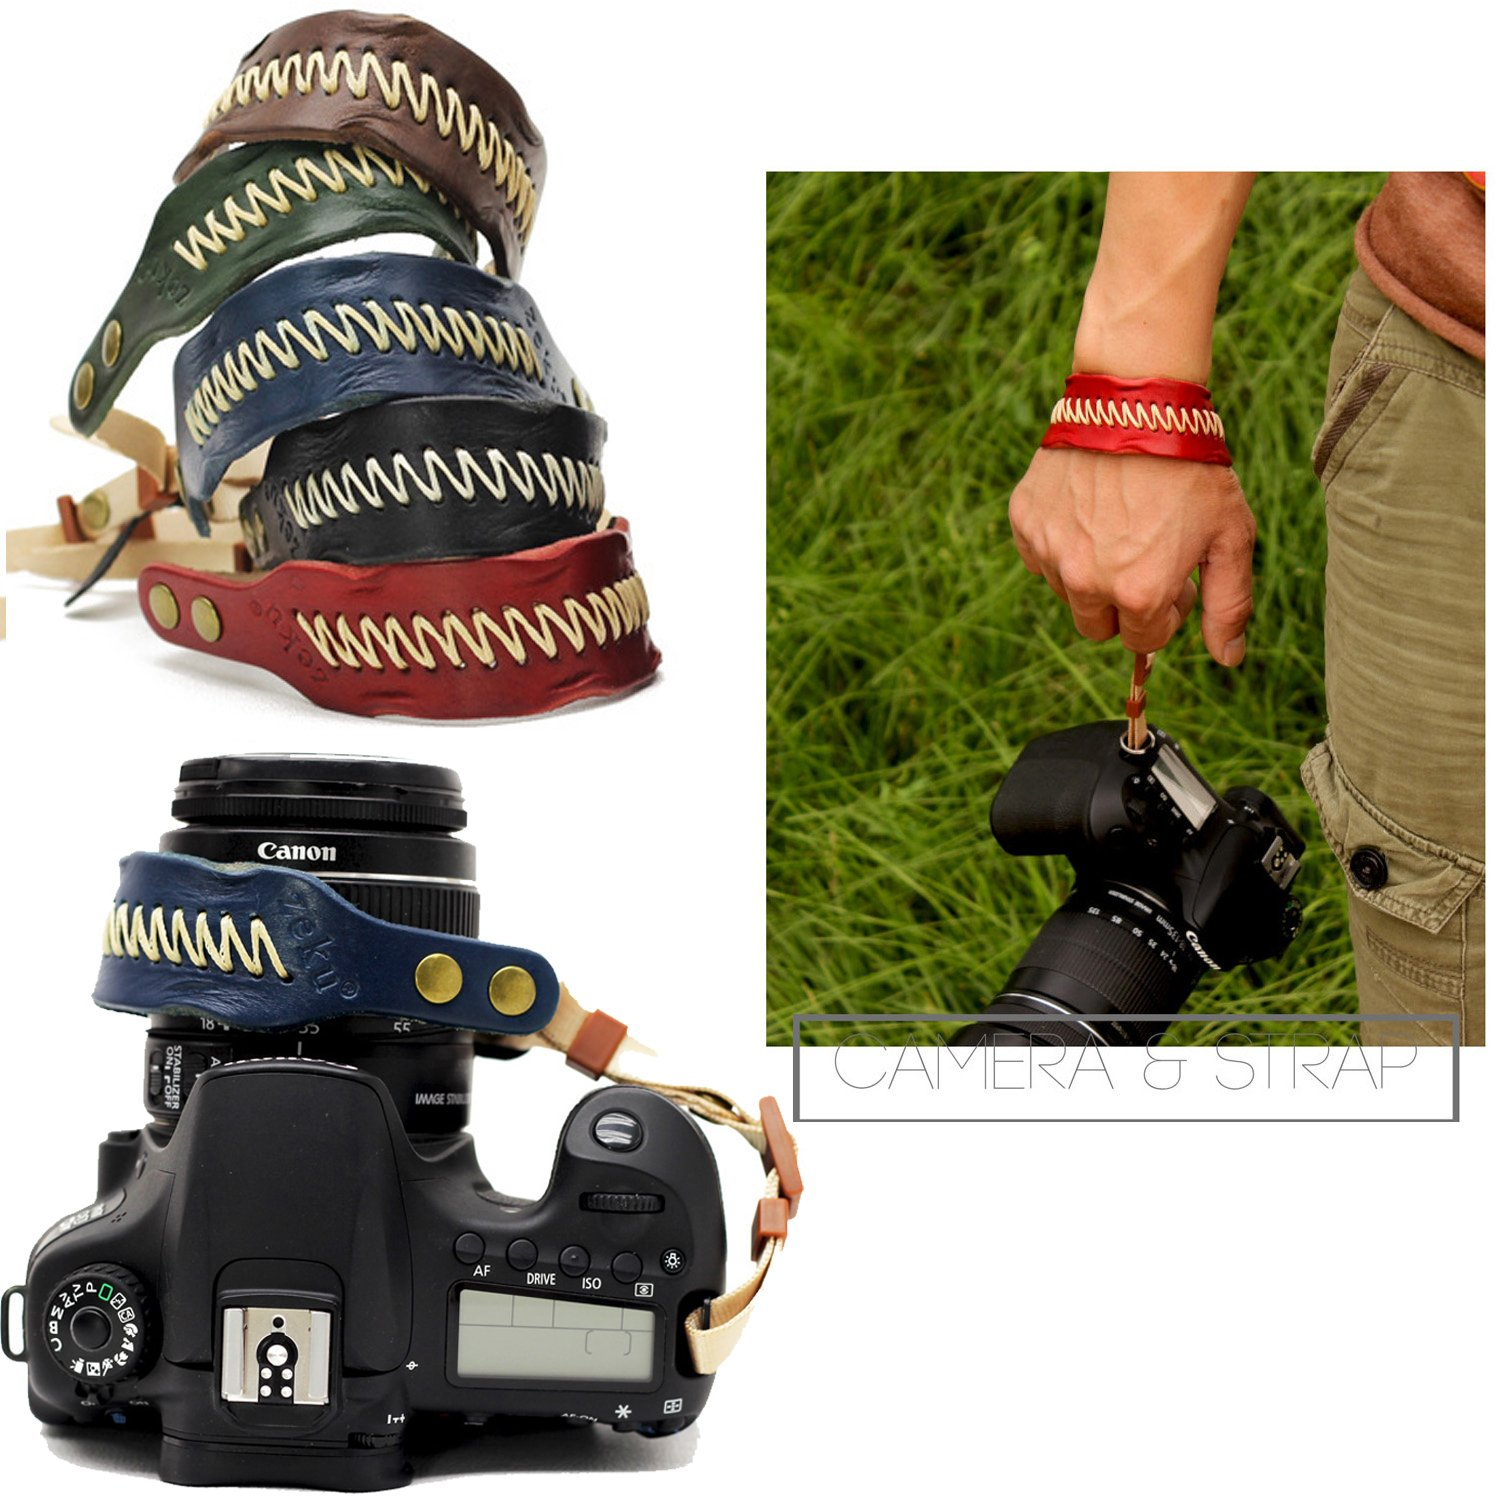 Nicad Camera Leather Wrist Strap - Comfort Padding  Enhanced Hand Grip Stability and Security for All DSLR Cameras Canon Nikon Sony Pentax Olympus(Blue) nicad NW-B